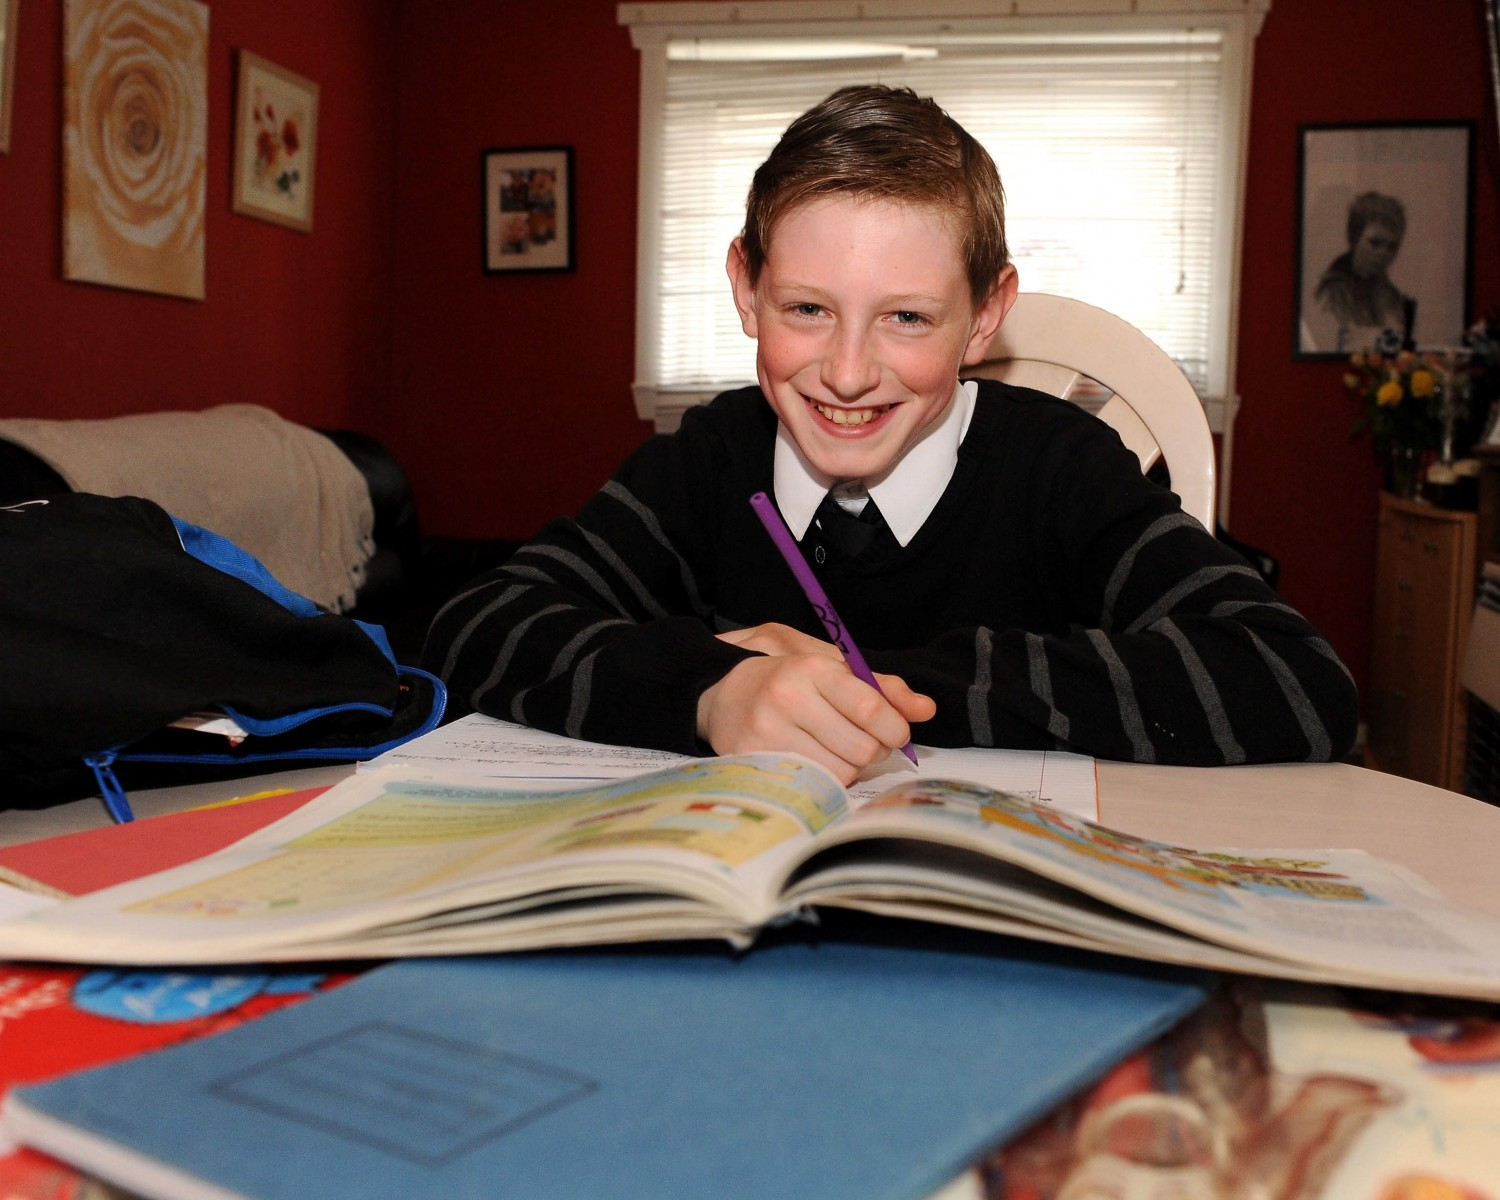 School boy returns to class after freak goalpost accident left him with a broken neck and jaw